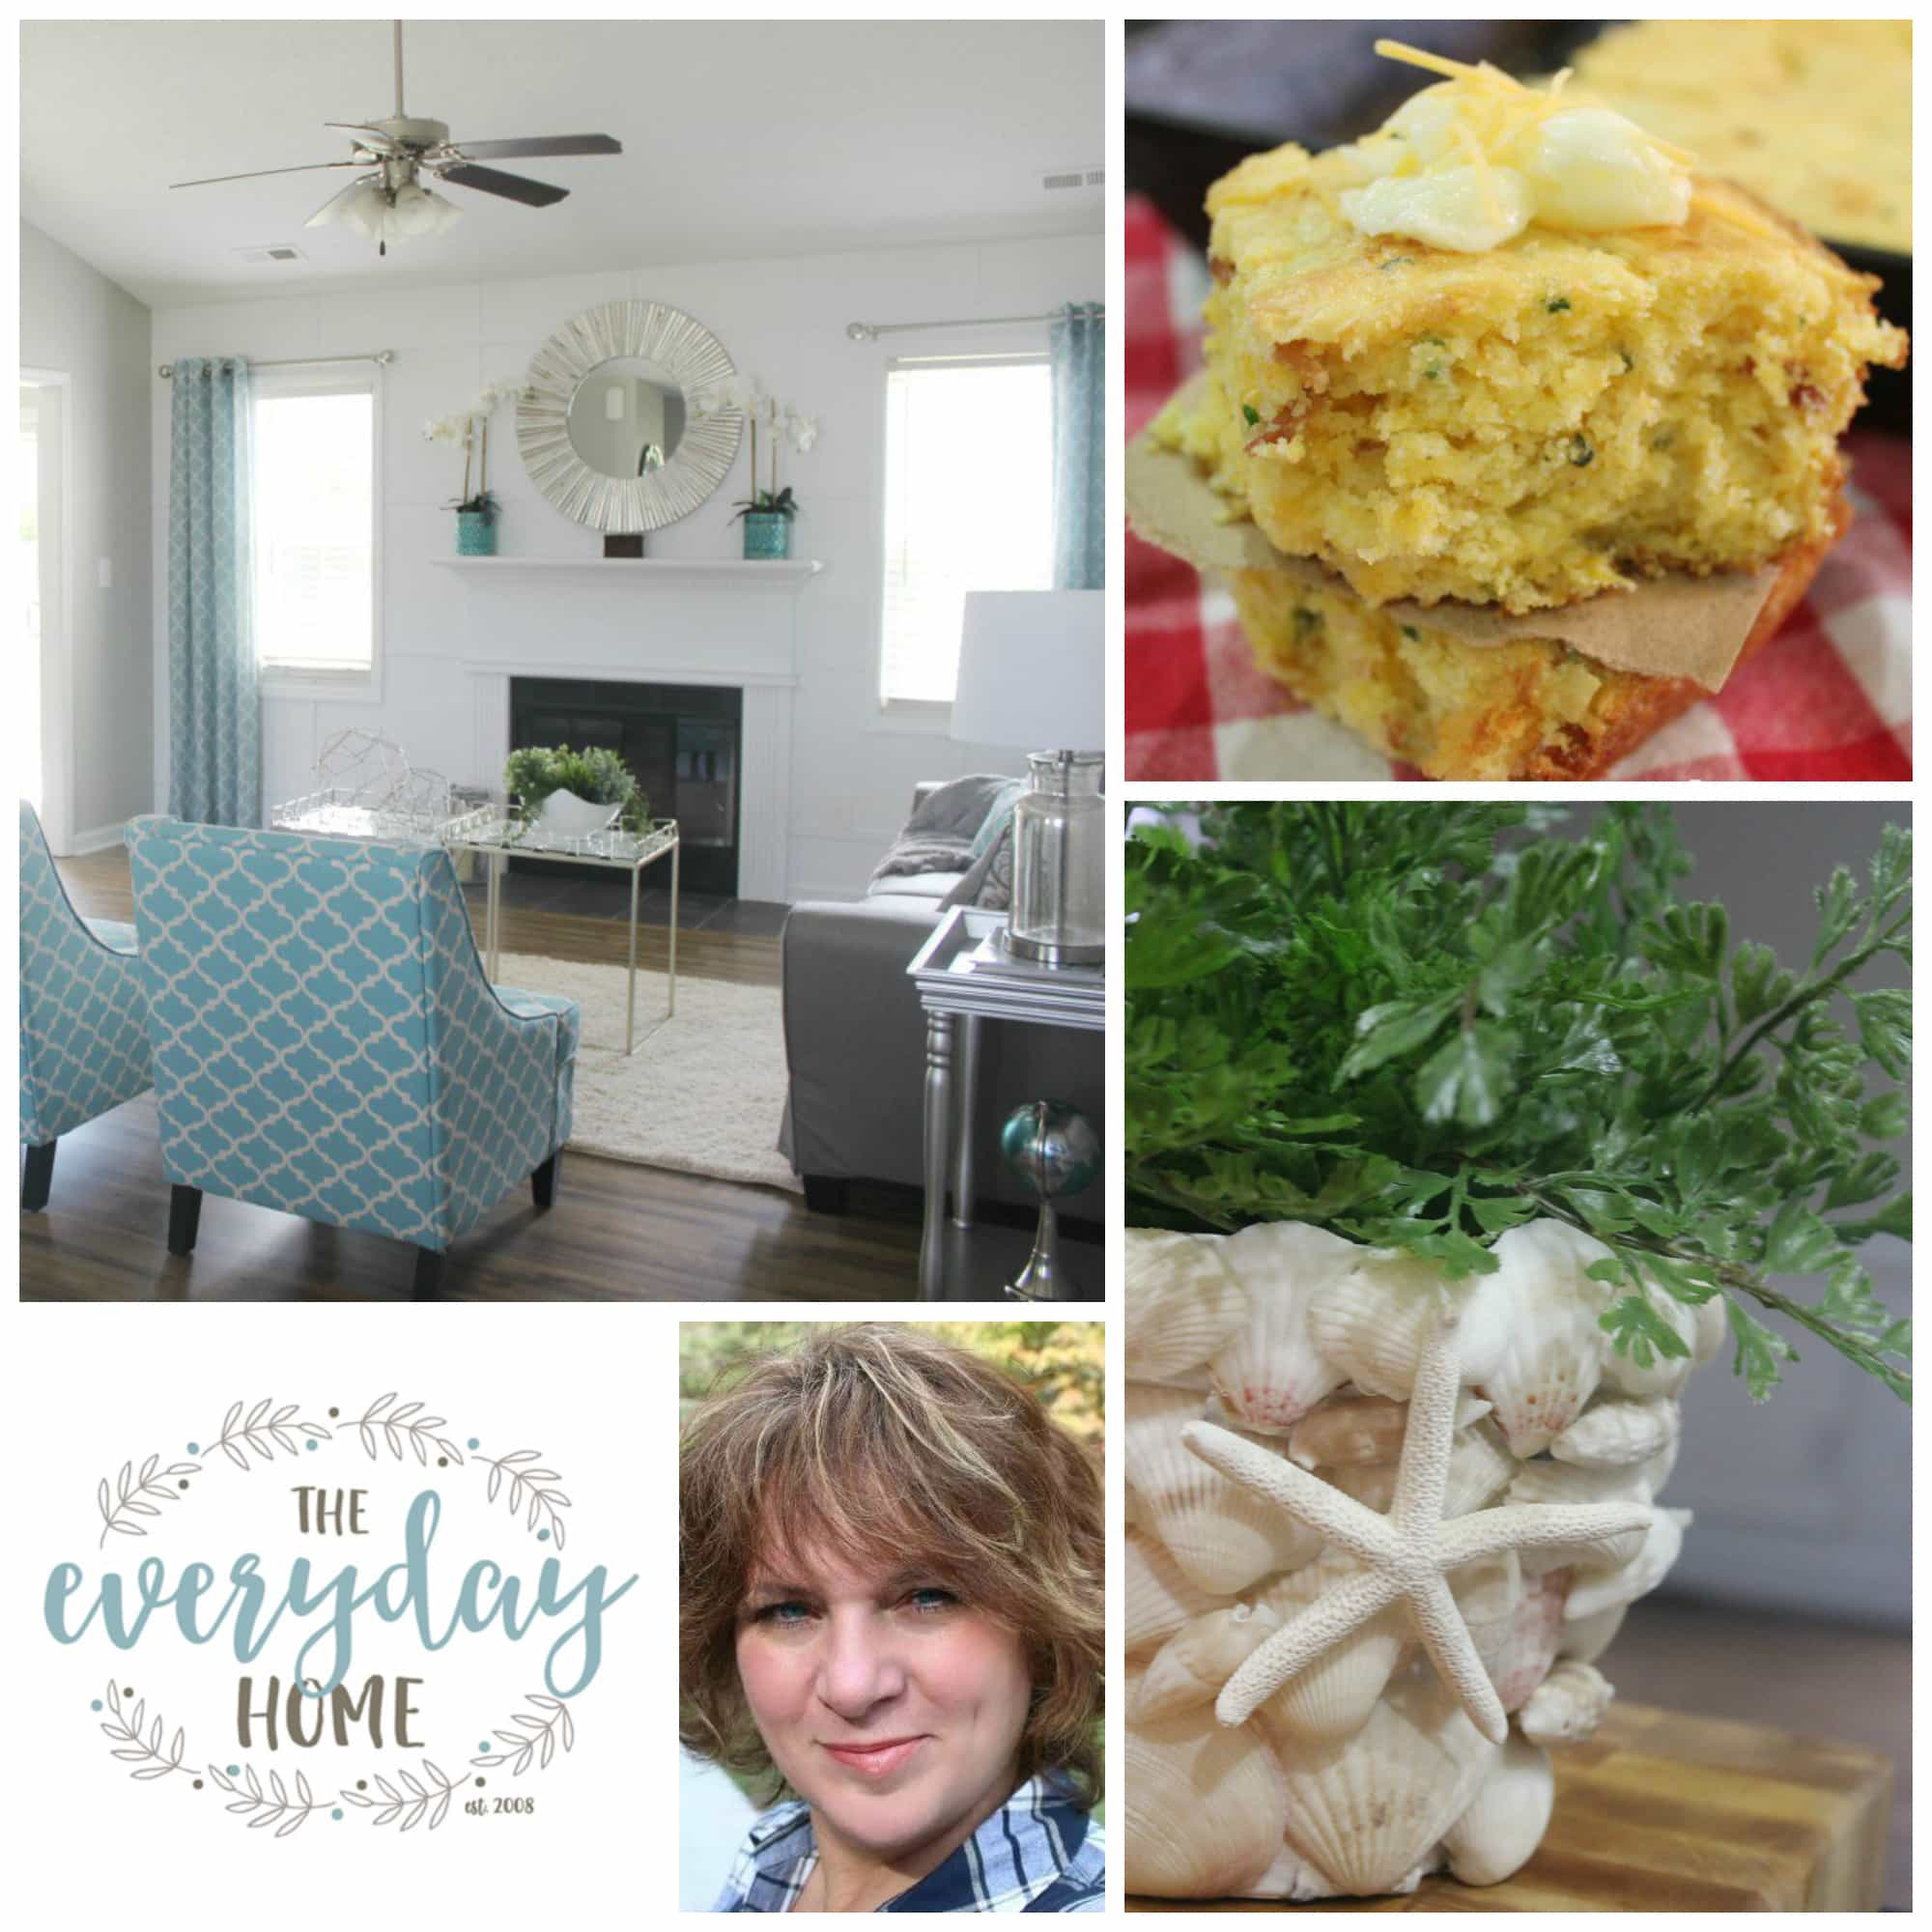 Everyday Home Collage